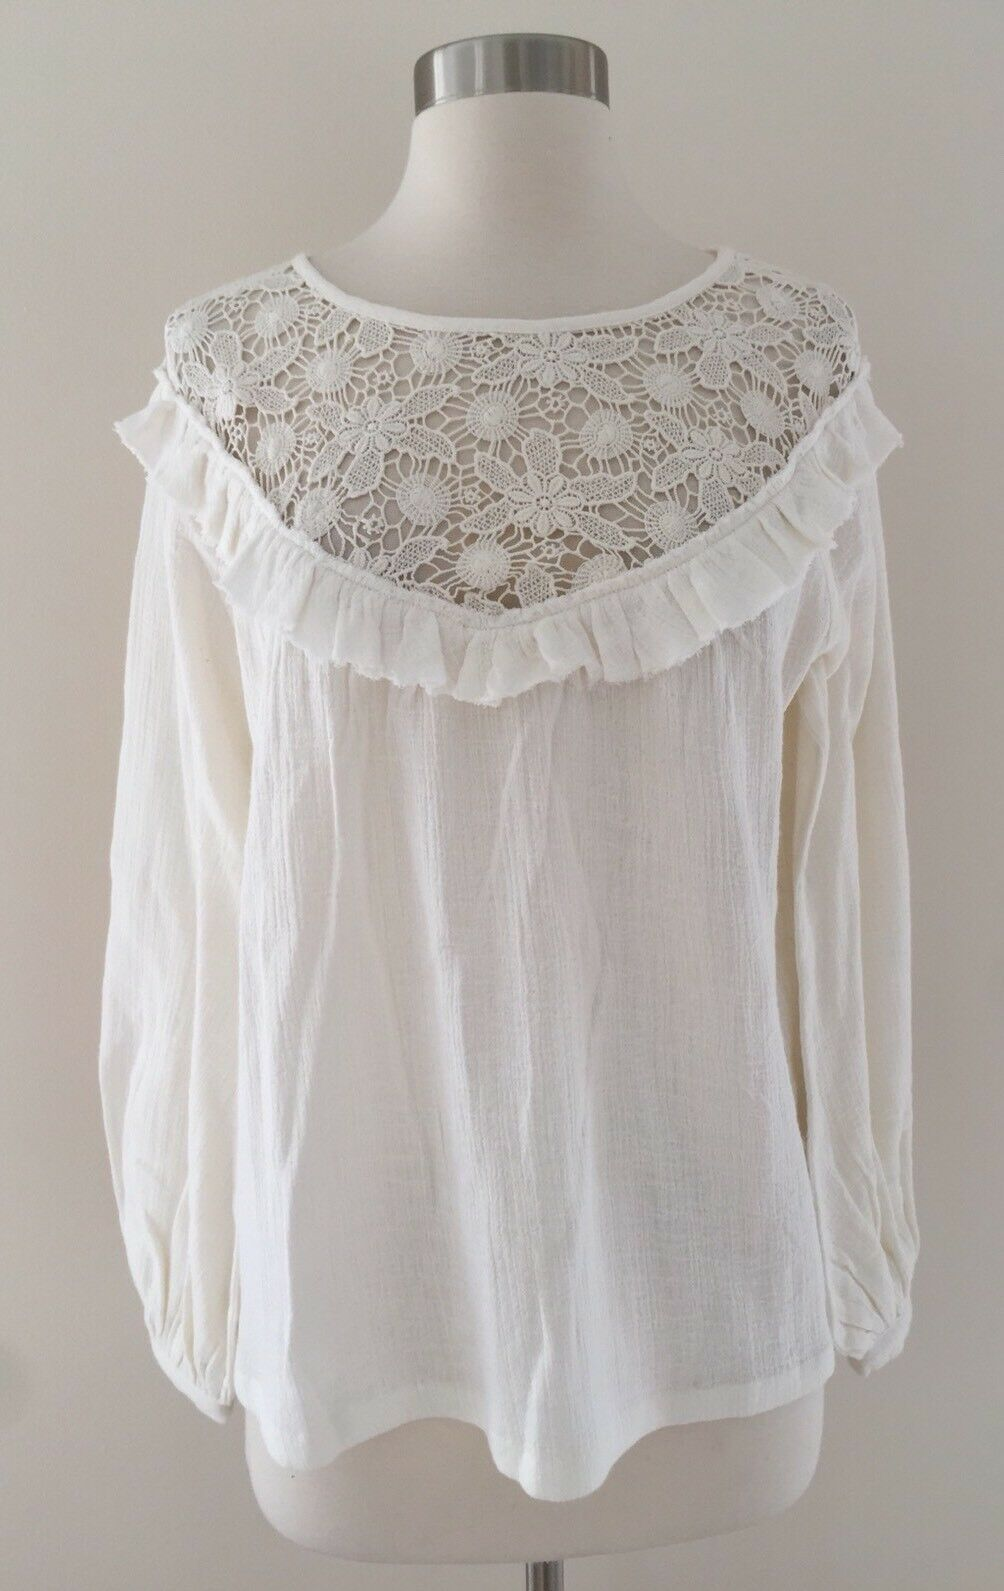 New Madewell sézane maggy ruffled top blouse Ivory Größe 38 M 6 H1216